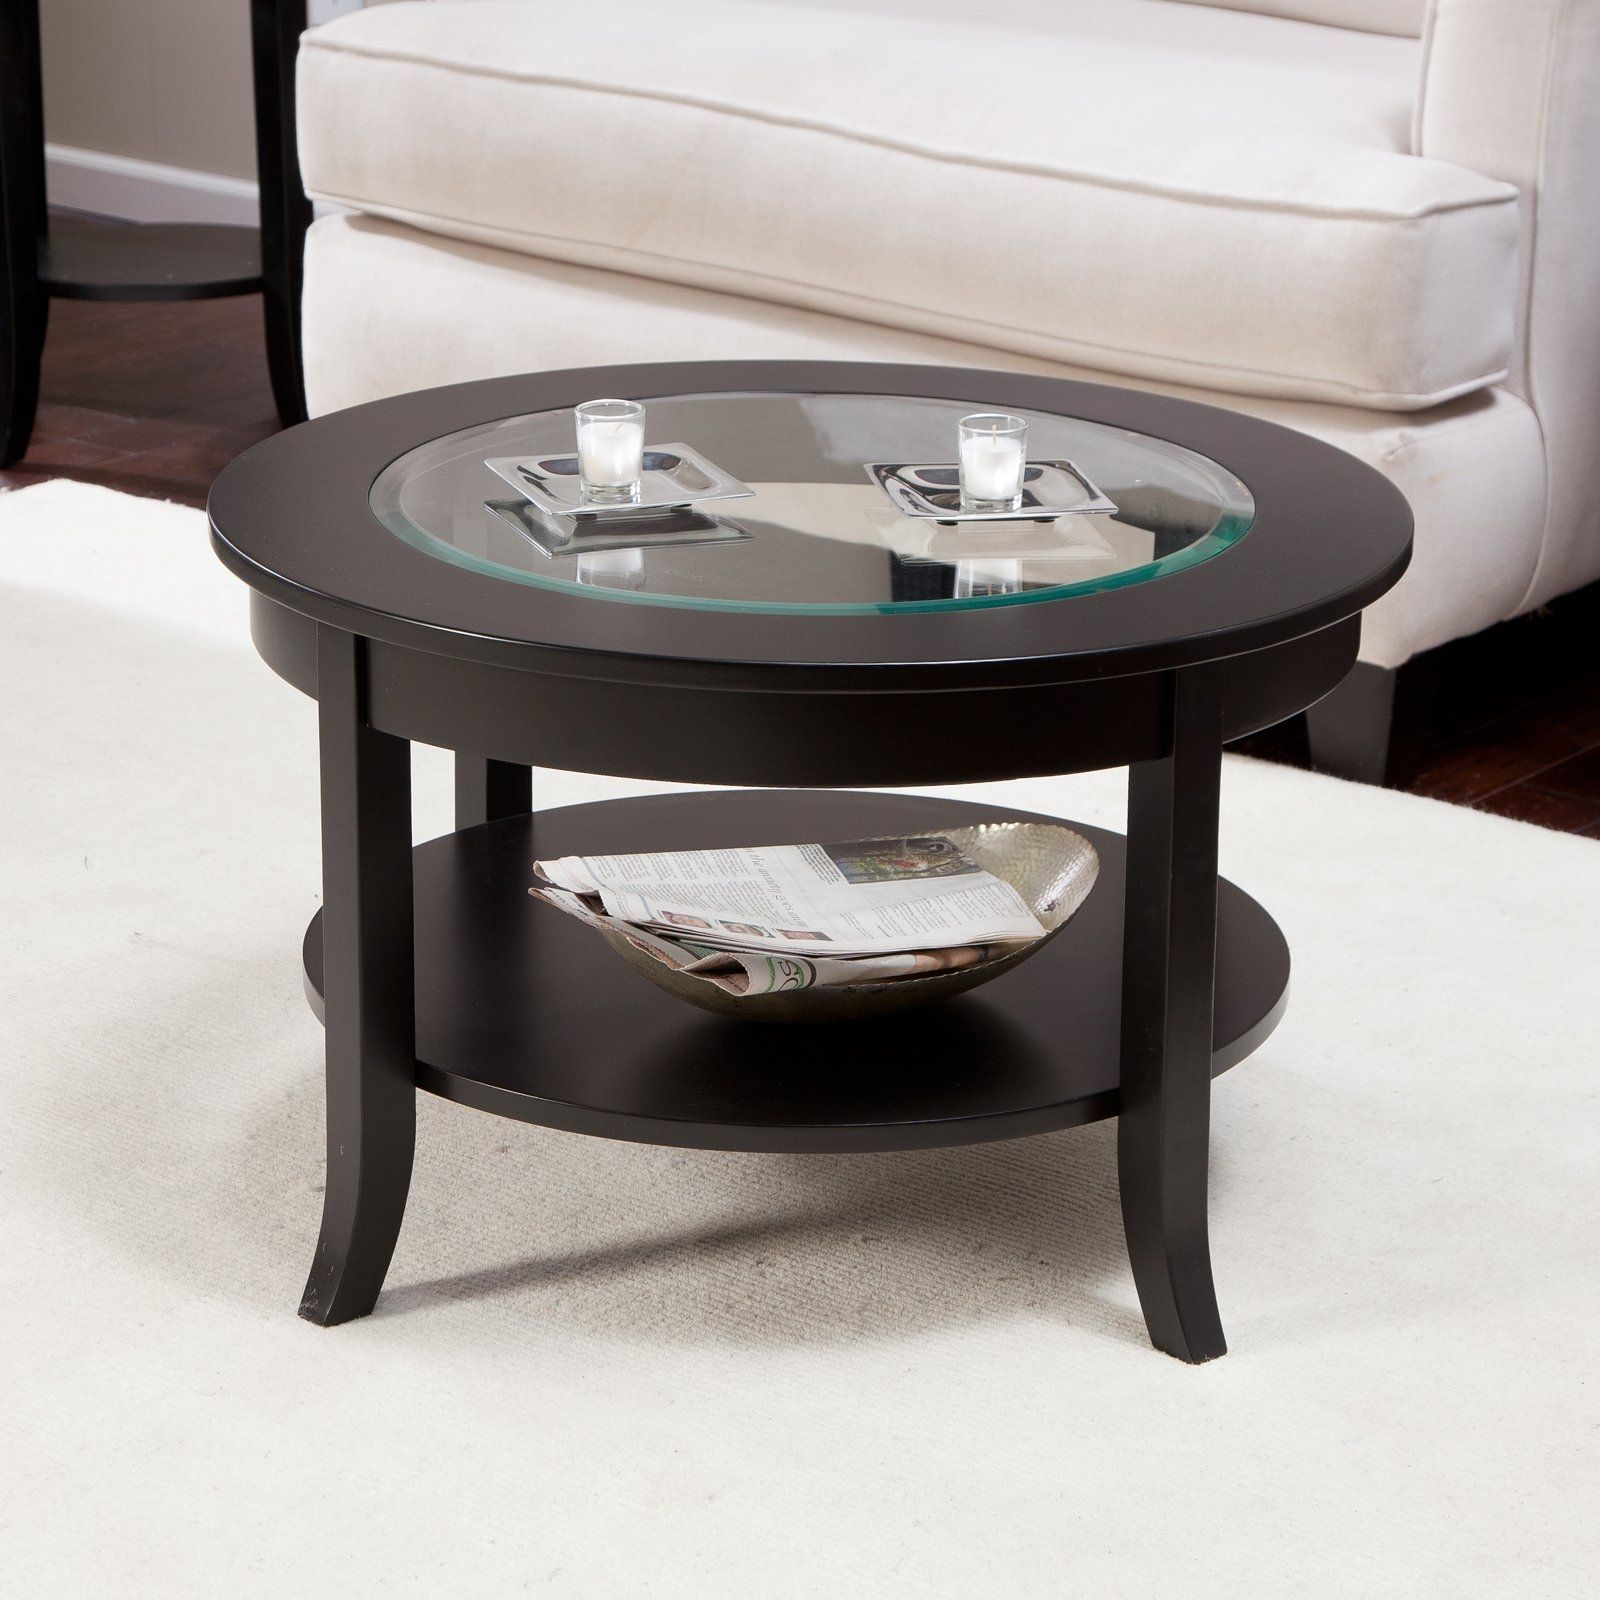 Best Round Coffee Tables | http://argharts.com | Pinterest